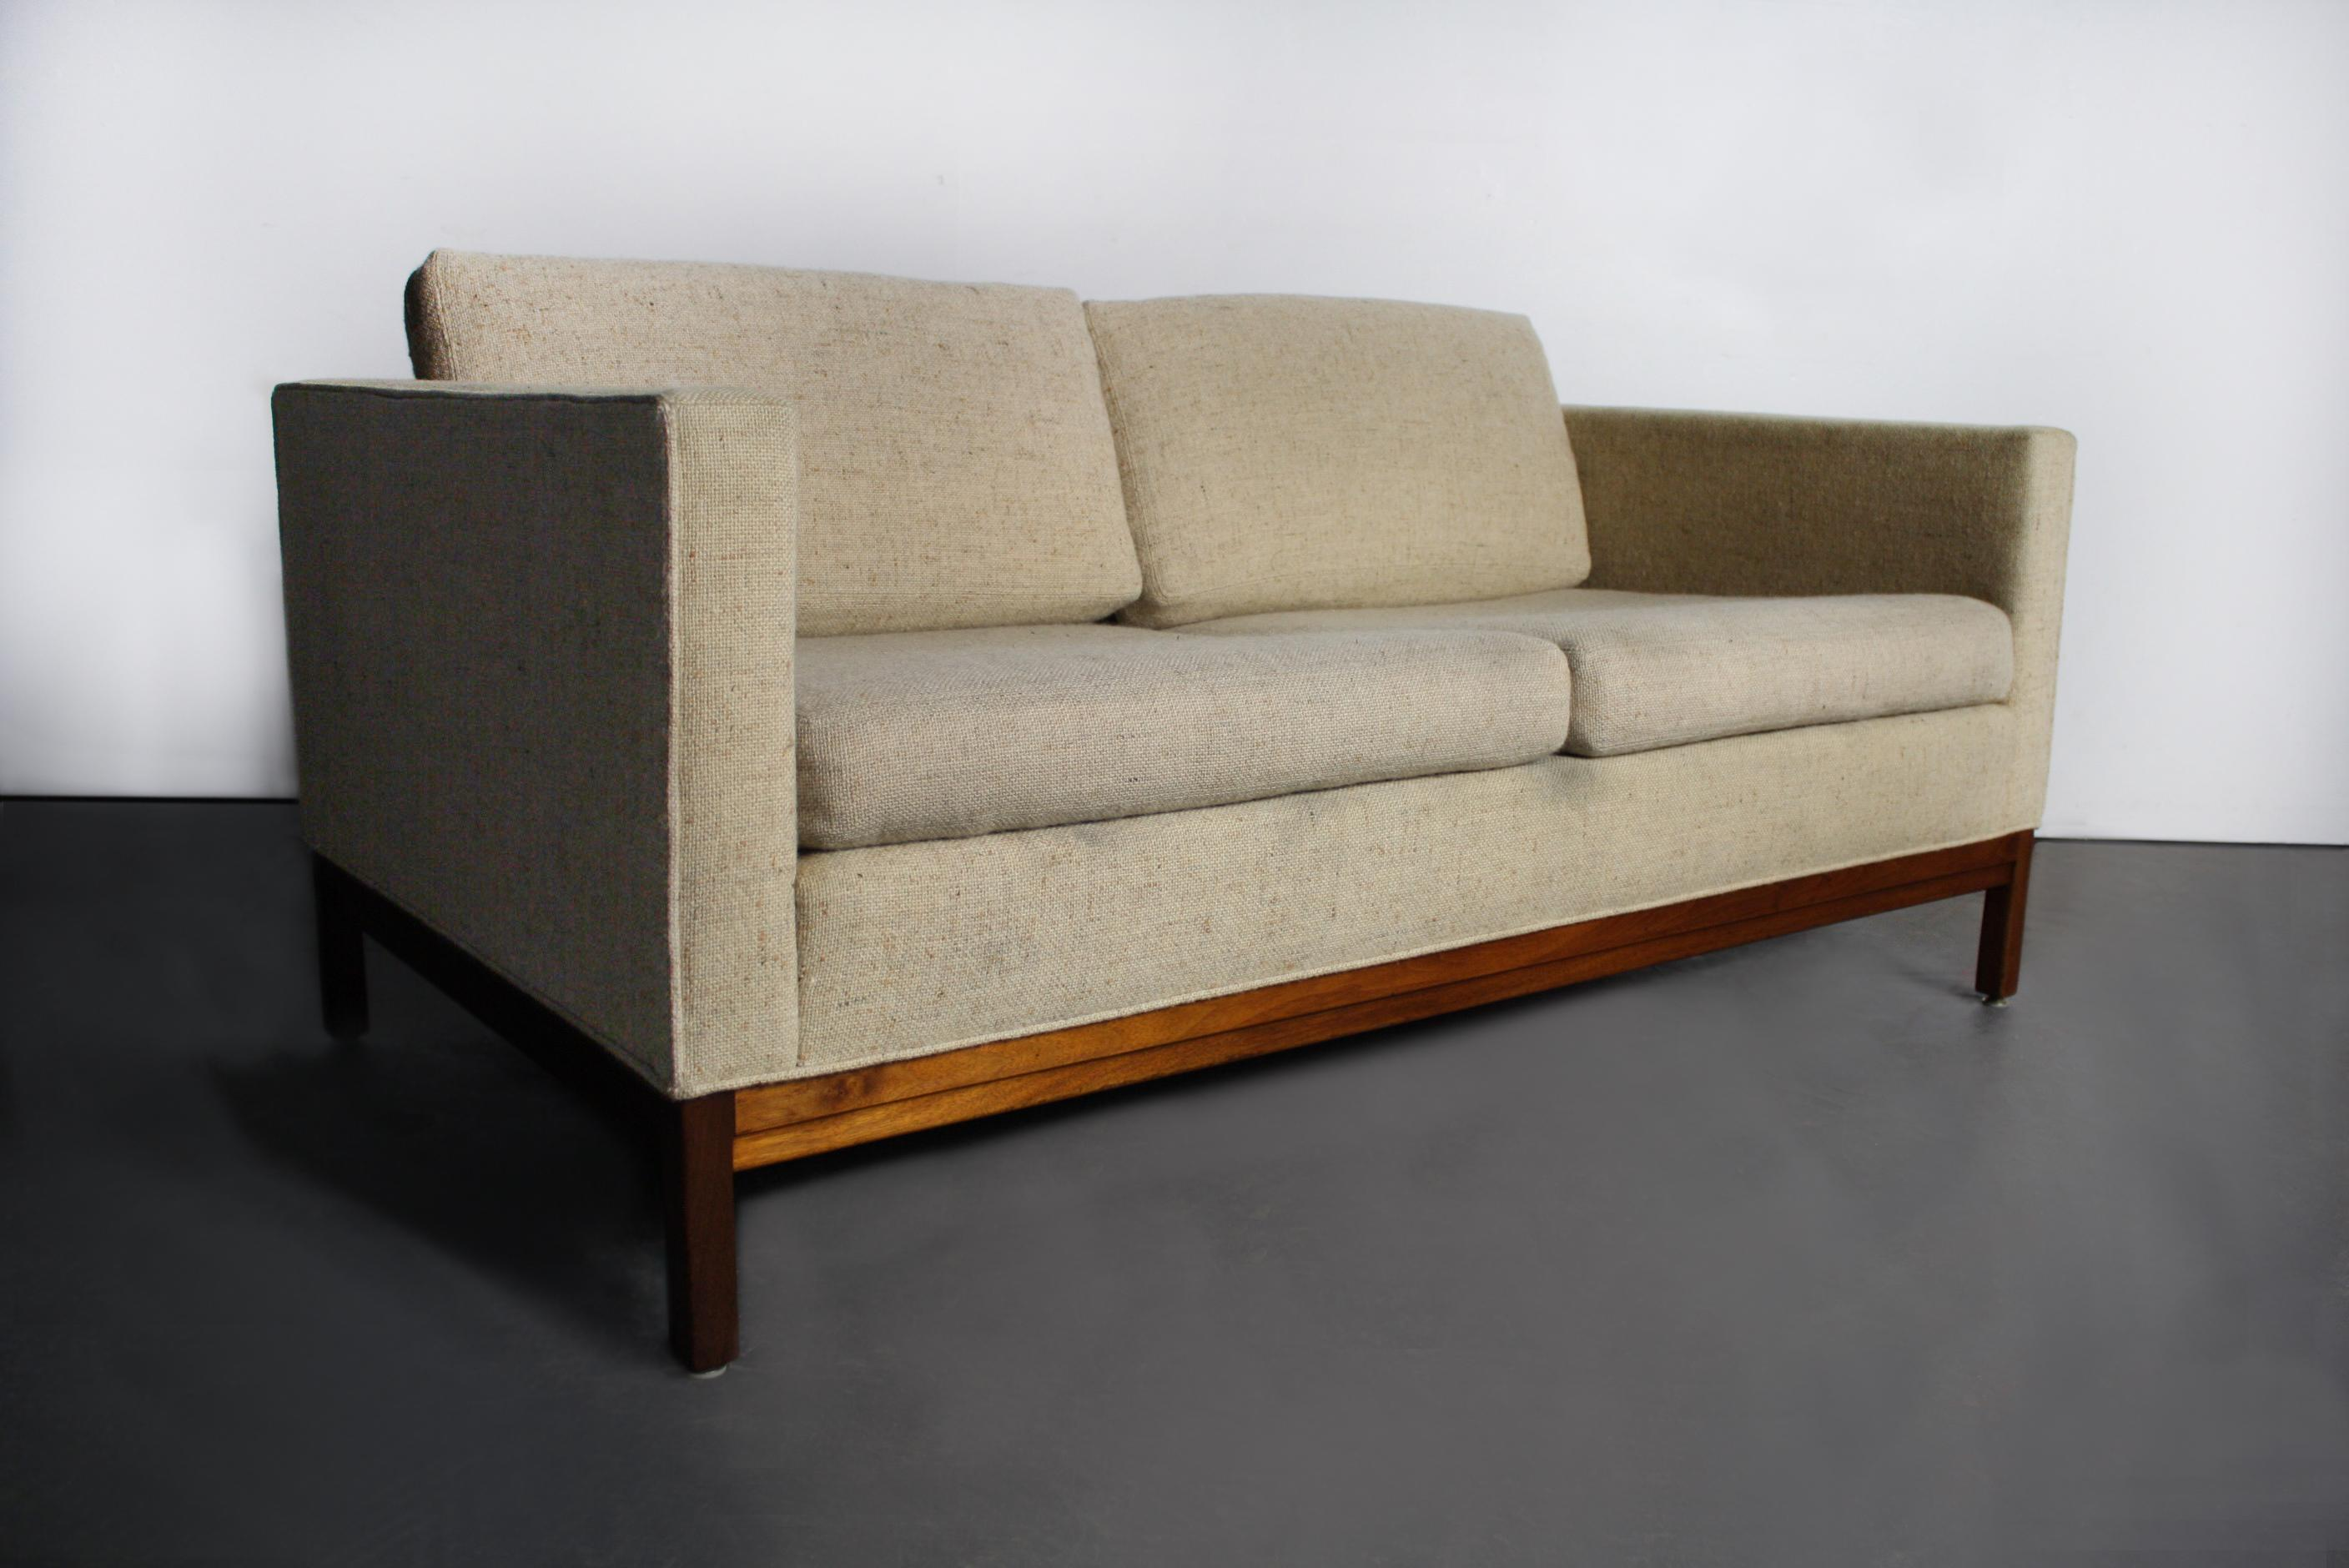 Mid Century Modern Loveseat By Johnson Furniture Company   Image 2 Of 3